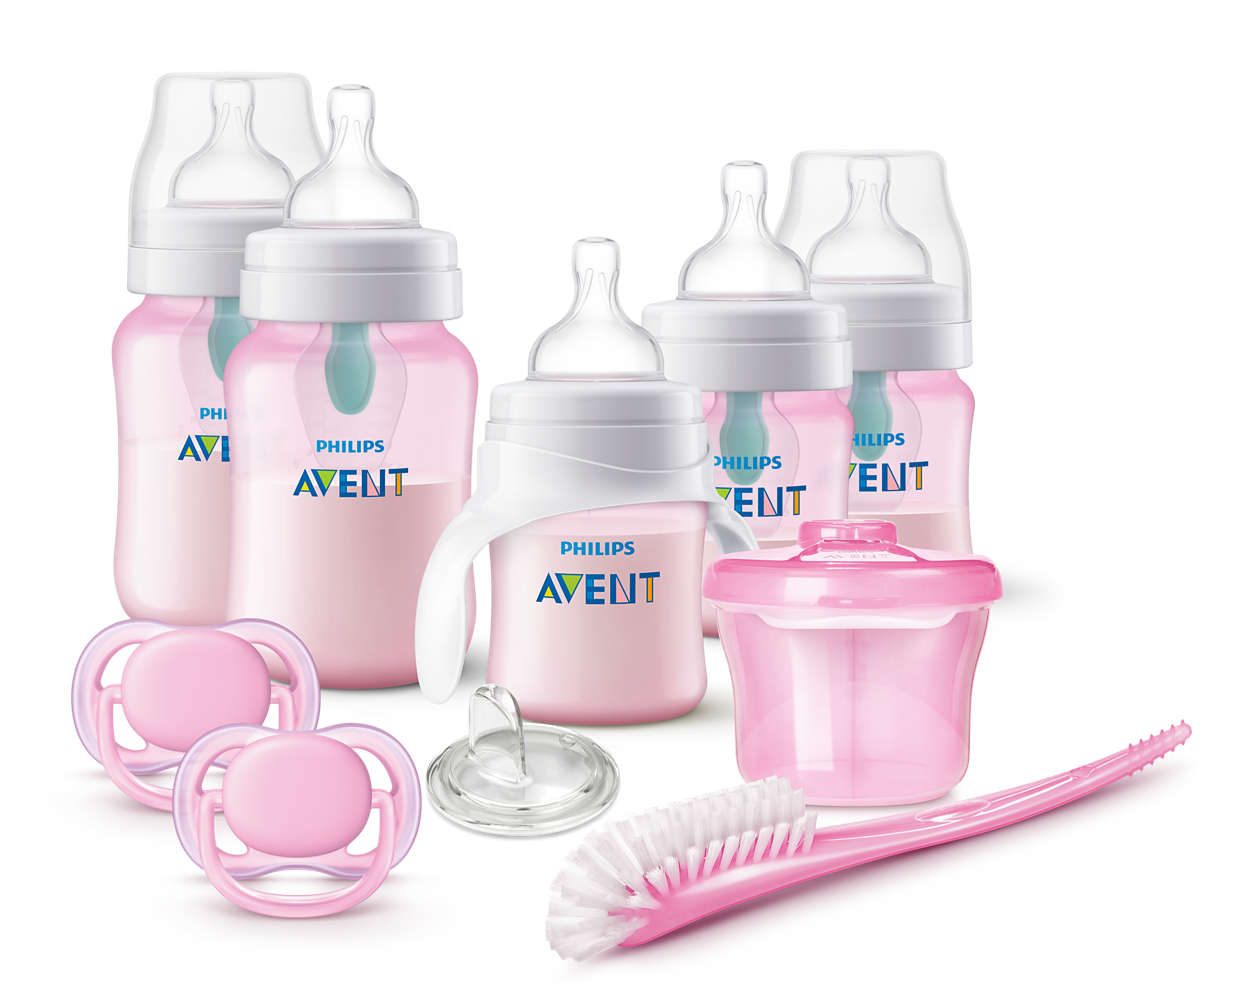 Anti Colic Bottle With Airfree Vent Gift Set Scd393 04 Avent